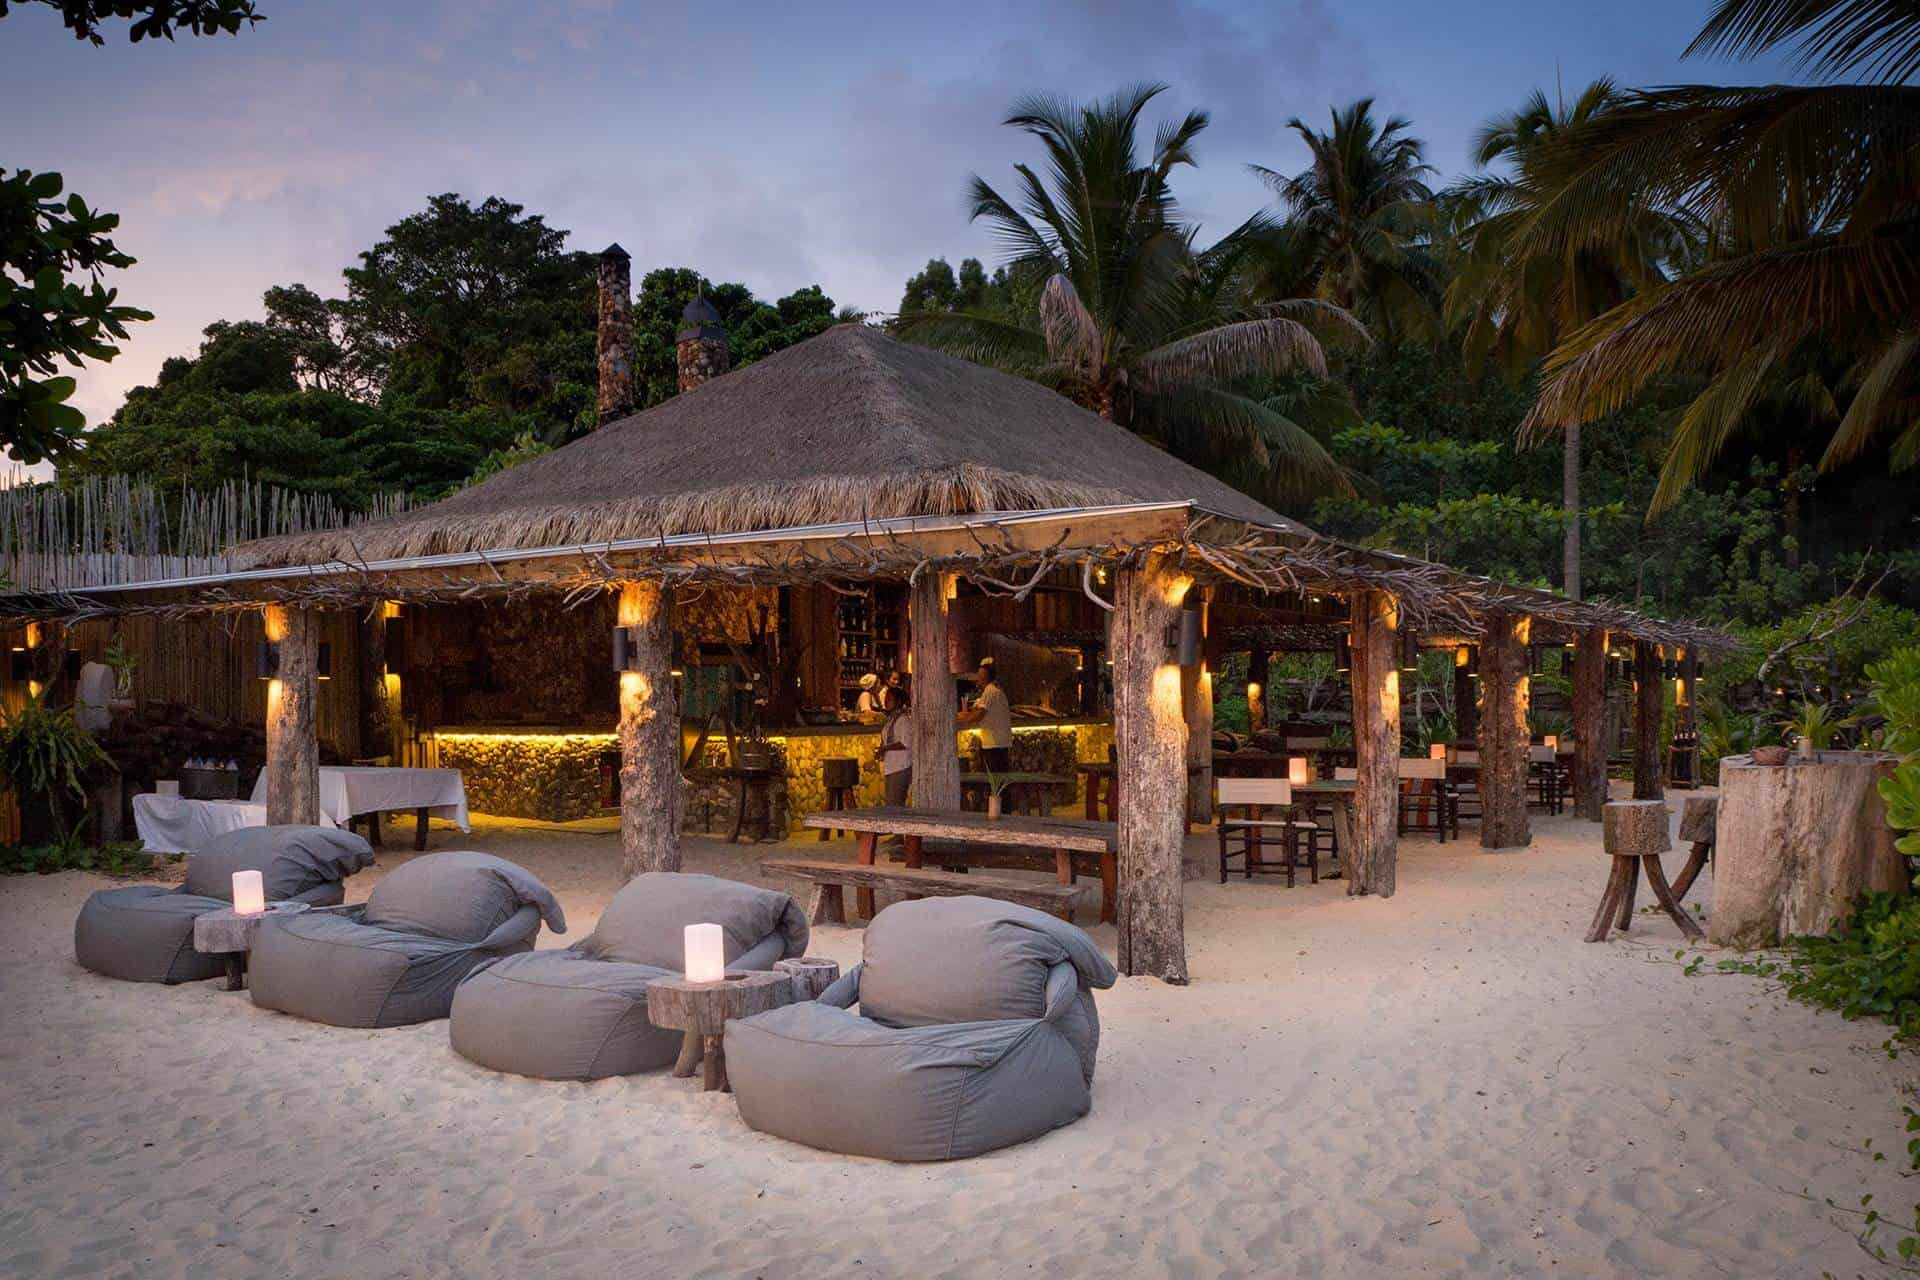 Song Saa is one of the best beaches in Cambodia